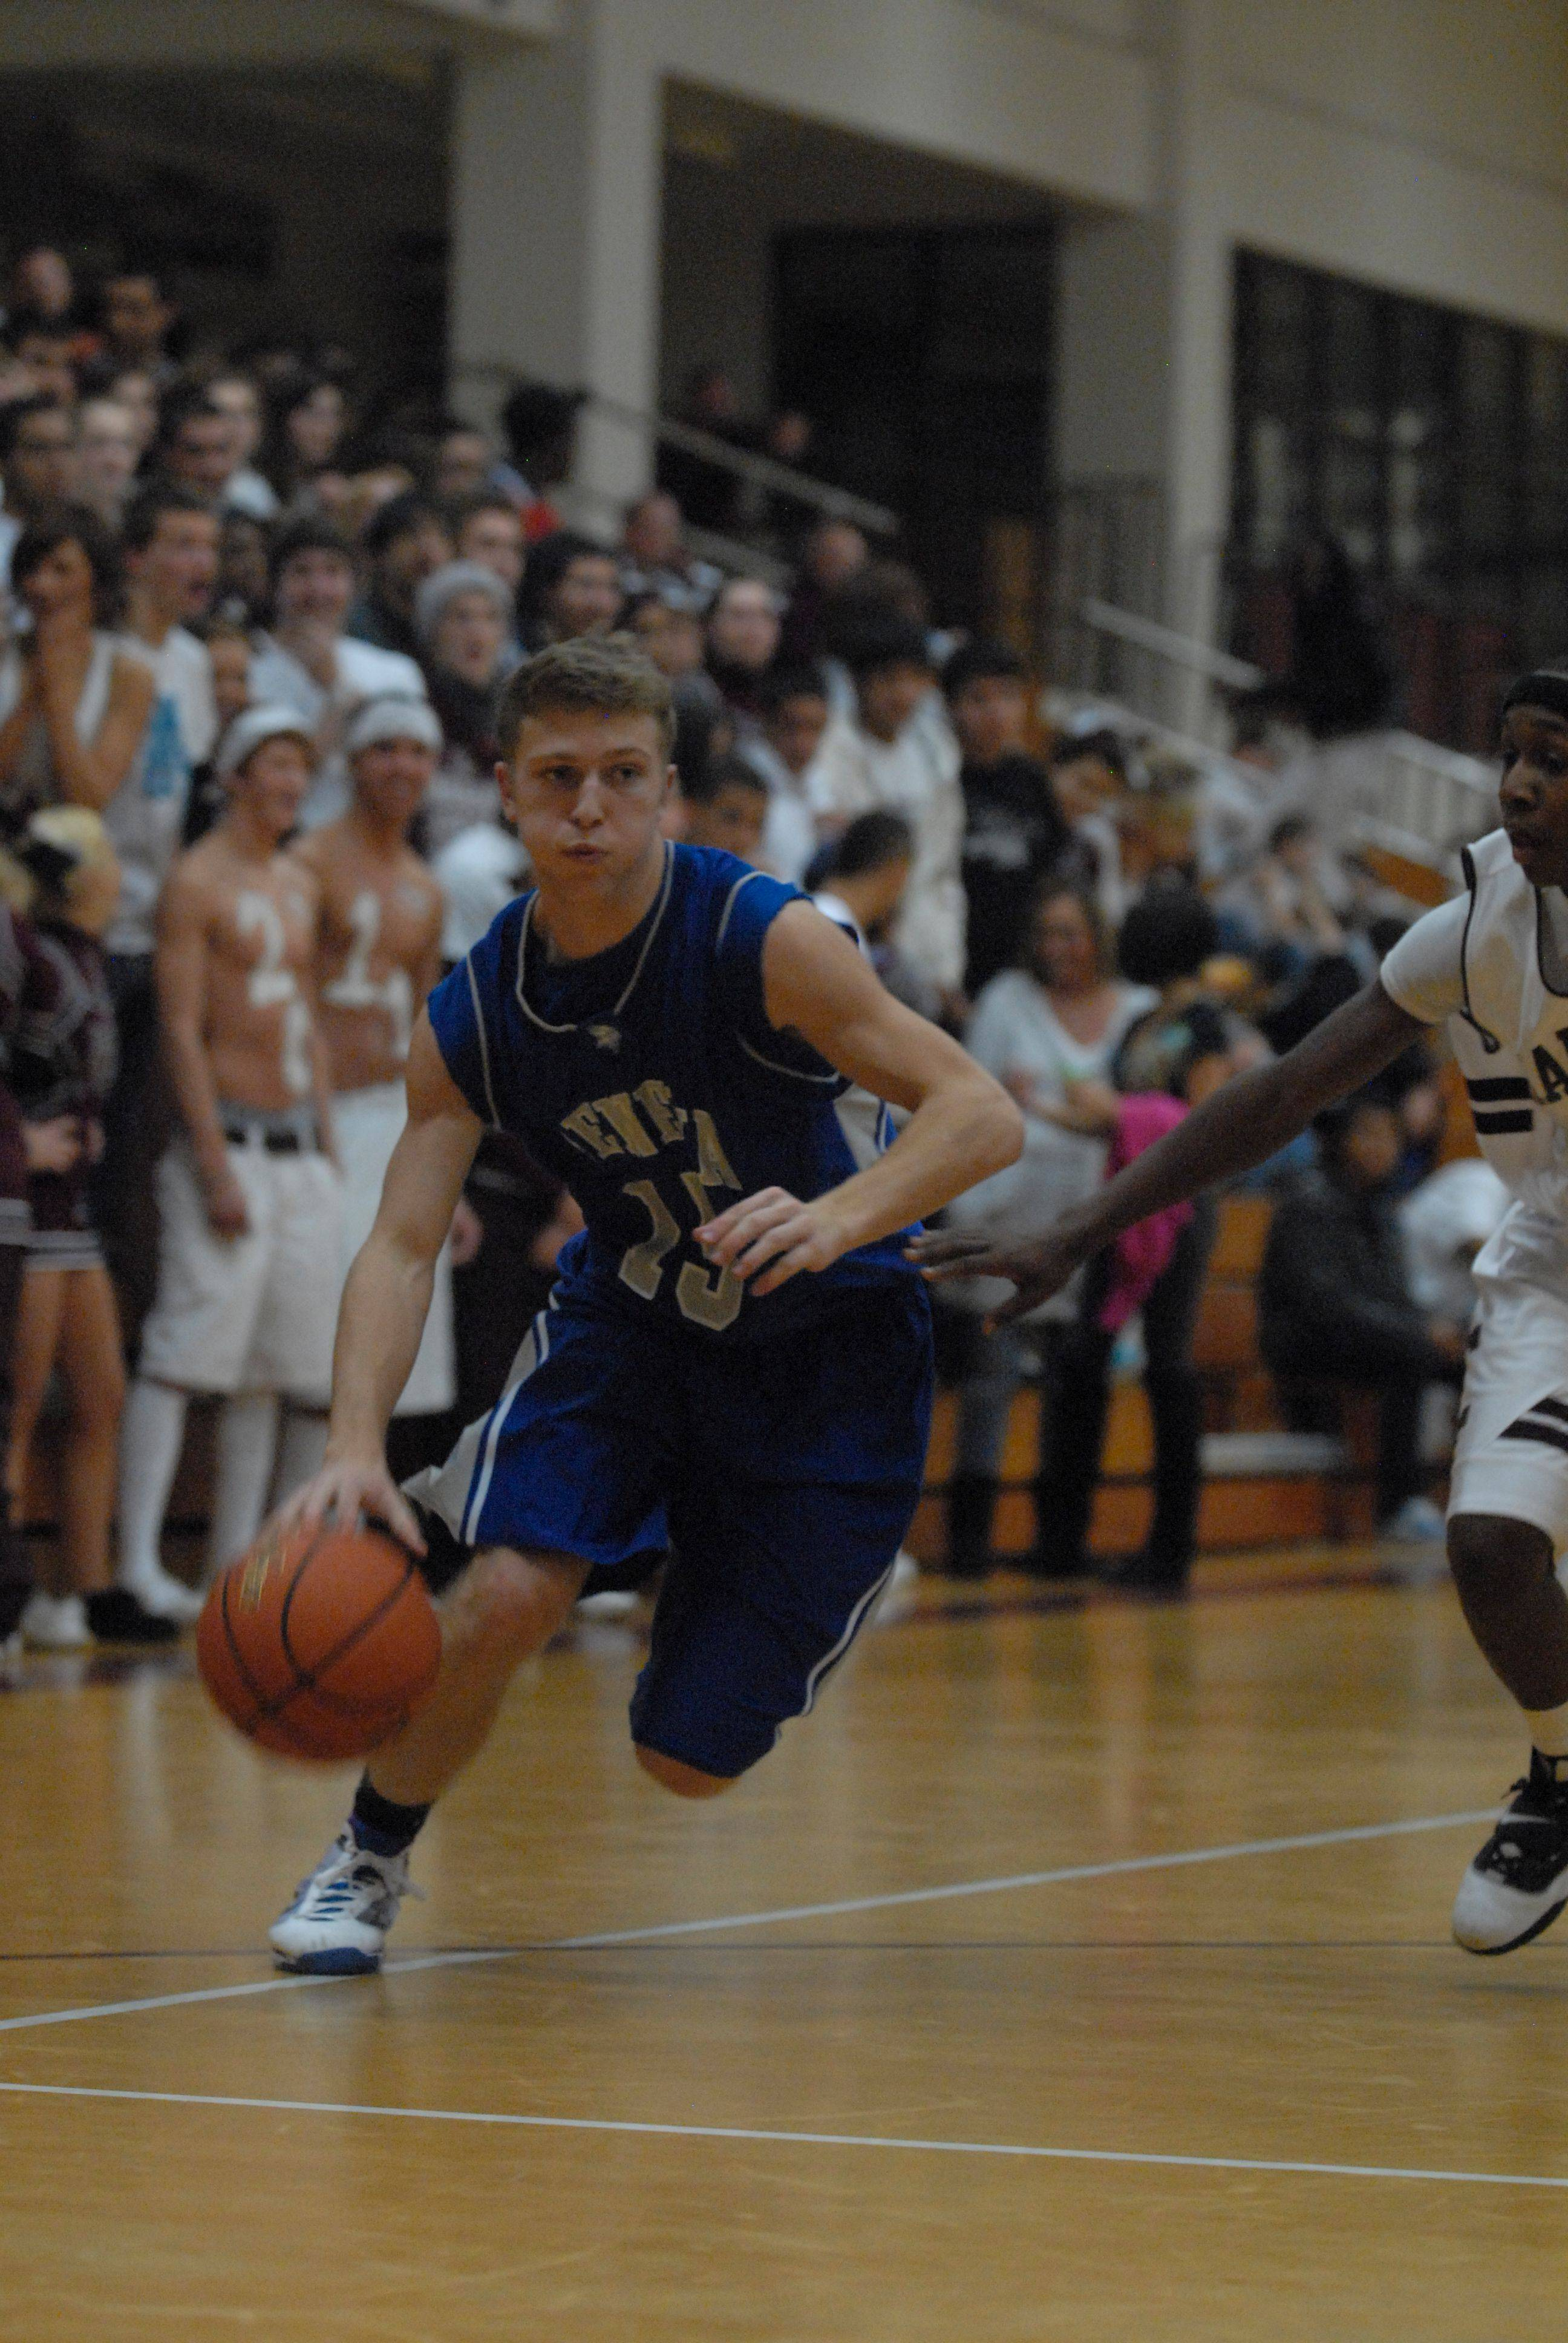 Images from the Geneva vs. Elgin boys basketball game Friday, December 10, 2010.